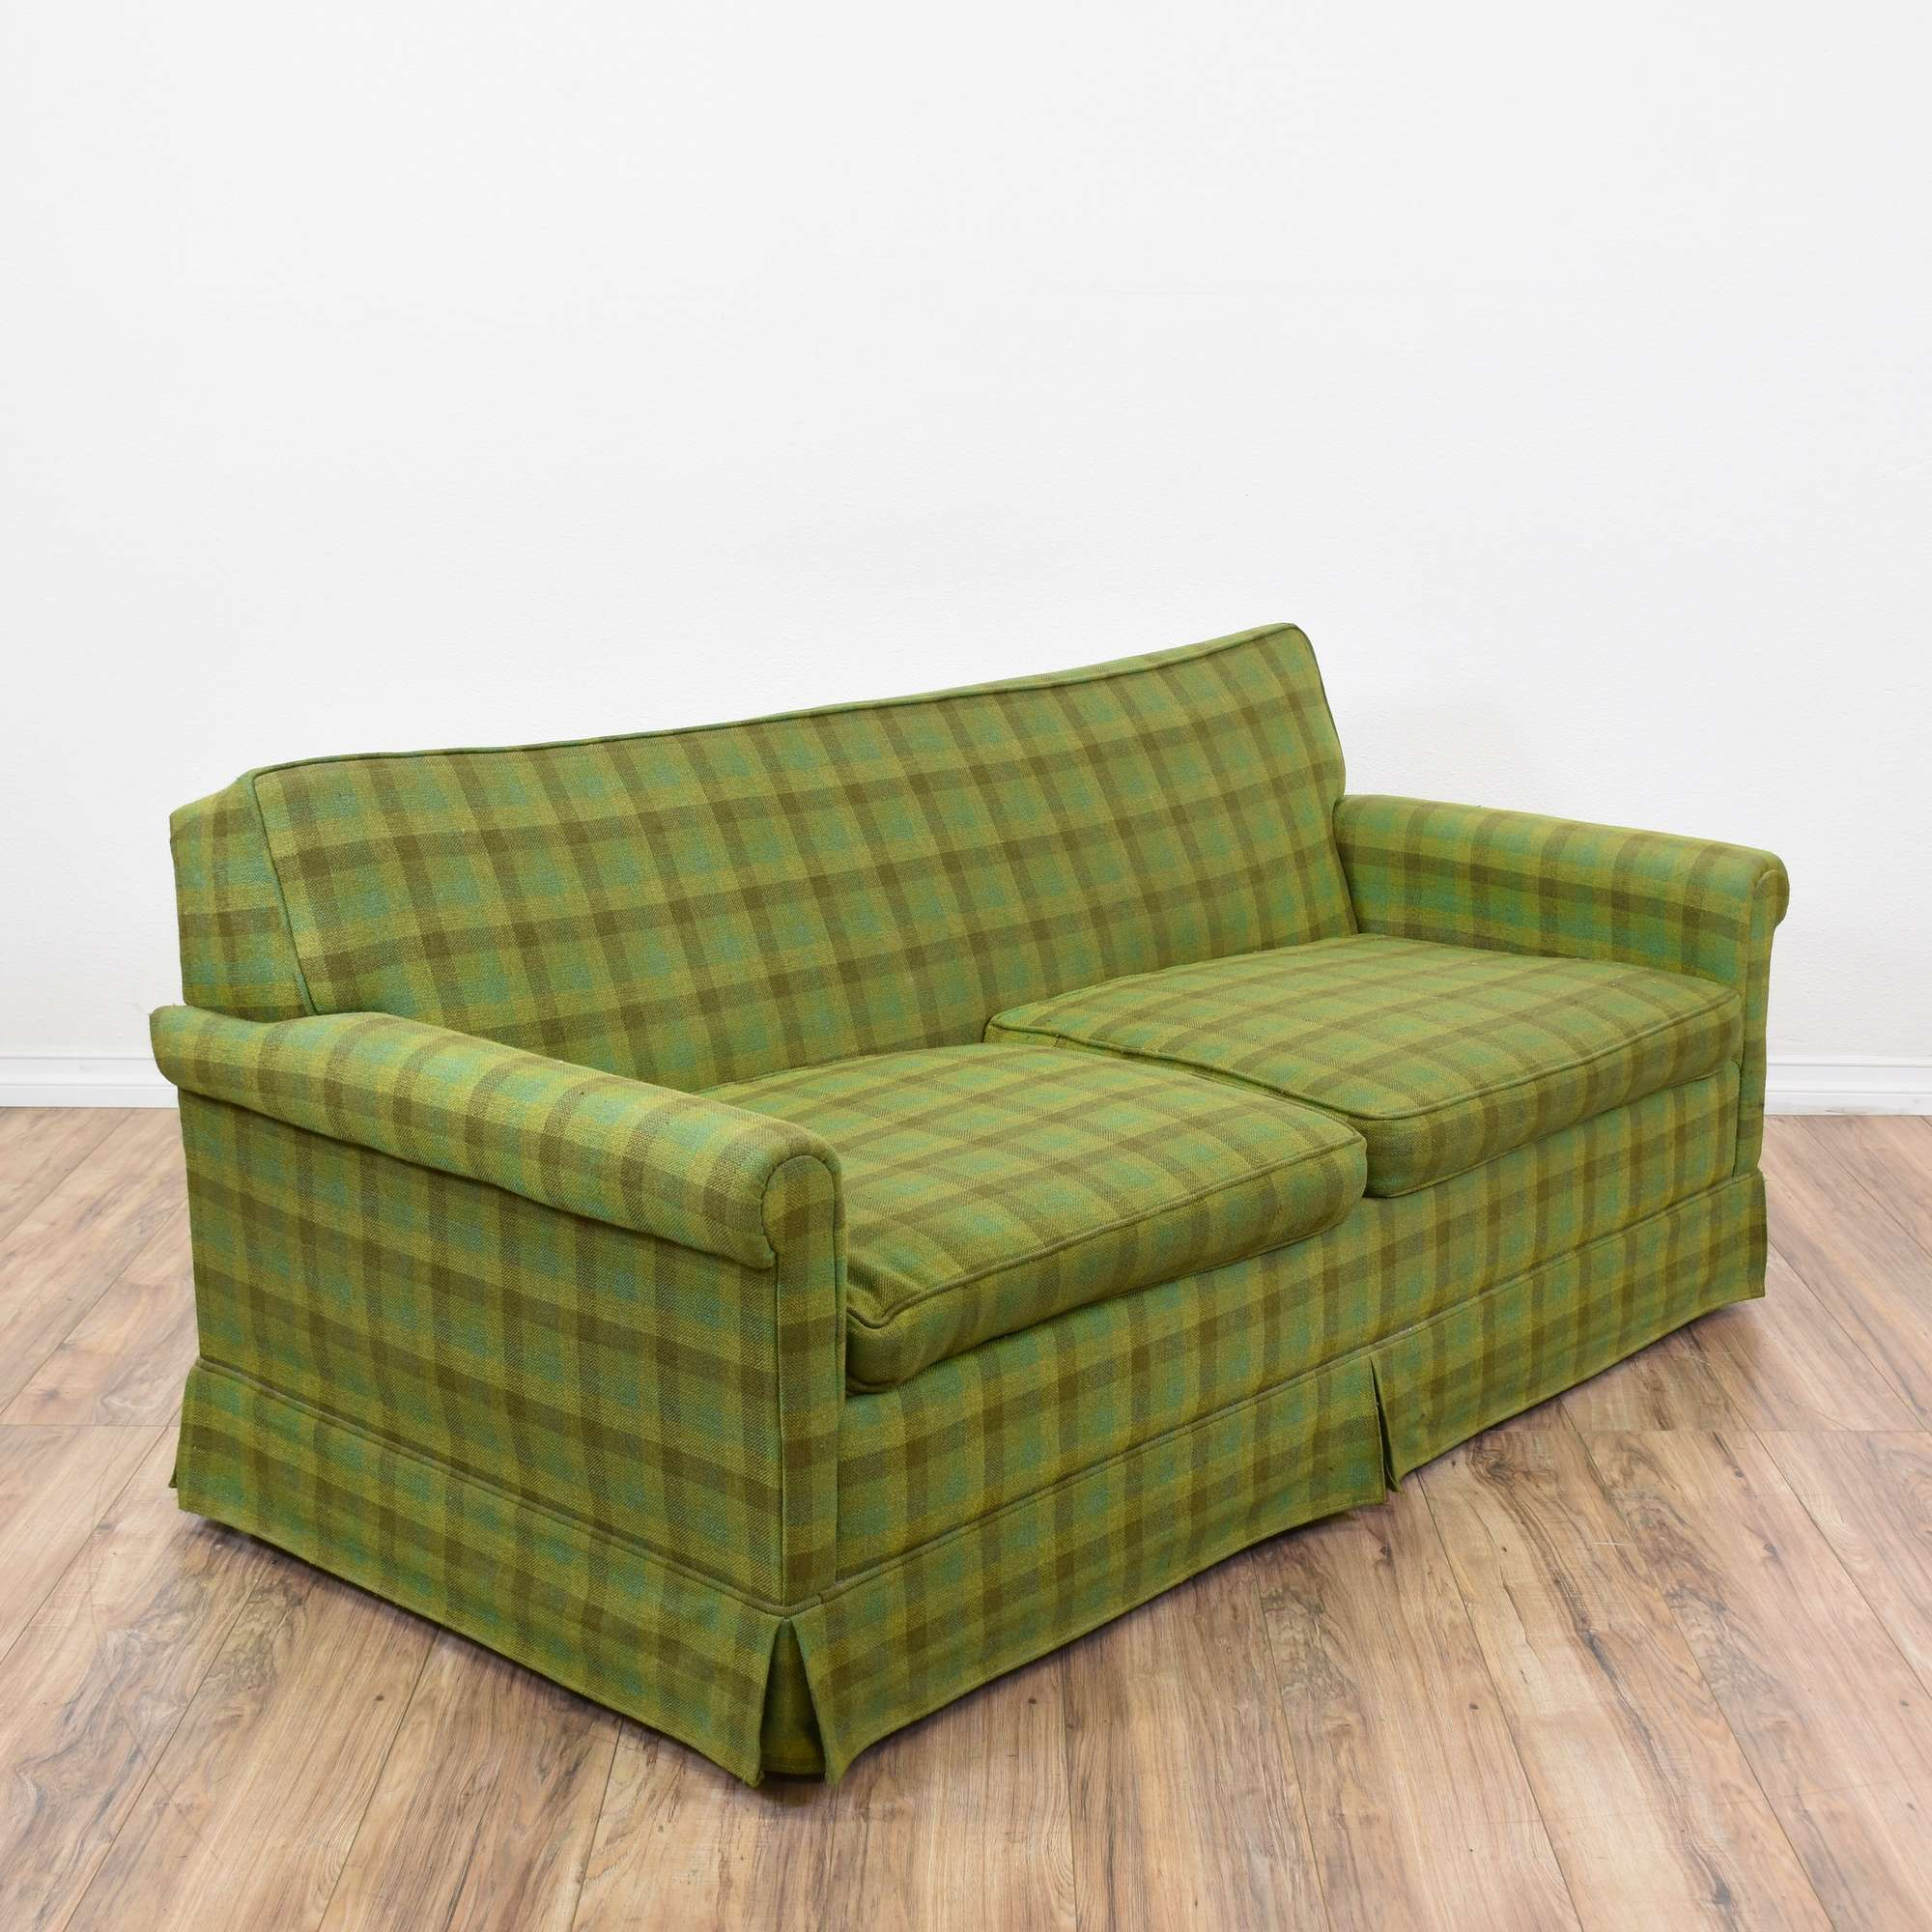 Green Plaid Sofa Awesome Plaid Couch 52 With Additional